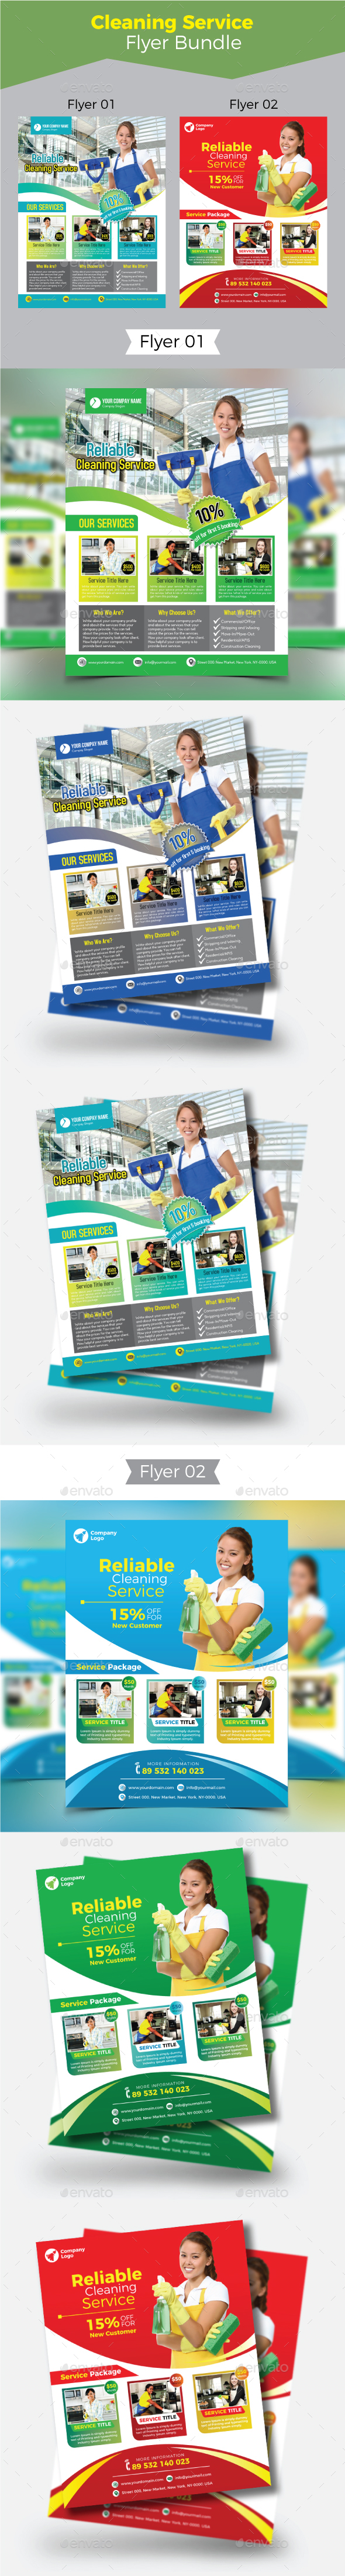 Cleaning Service Flyer Bundle - Commerce Flyers